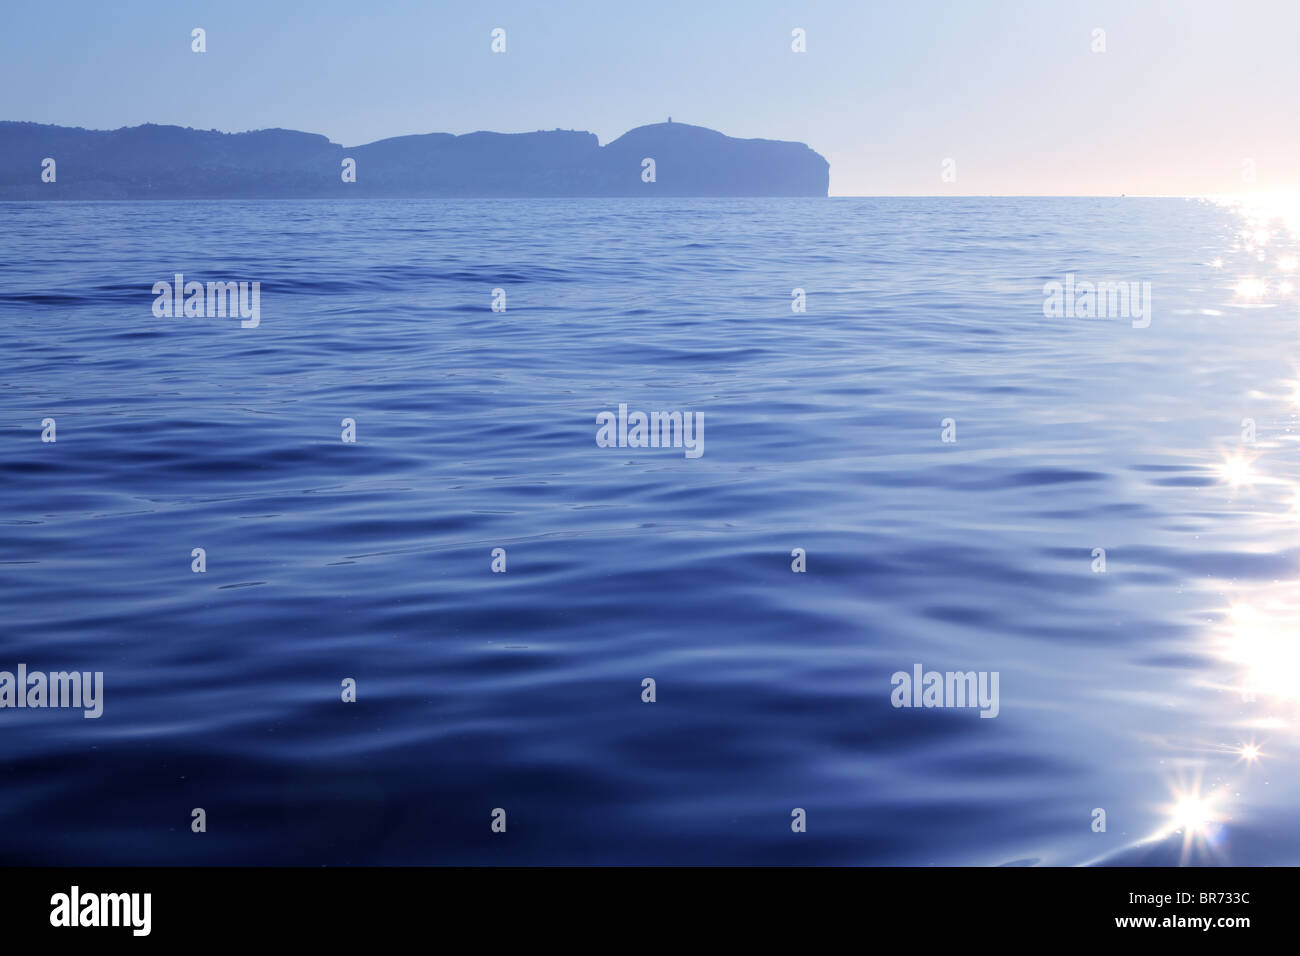 Nao Cape far view blue reflection water Alicante province Spain - Stock Image